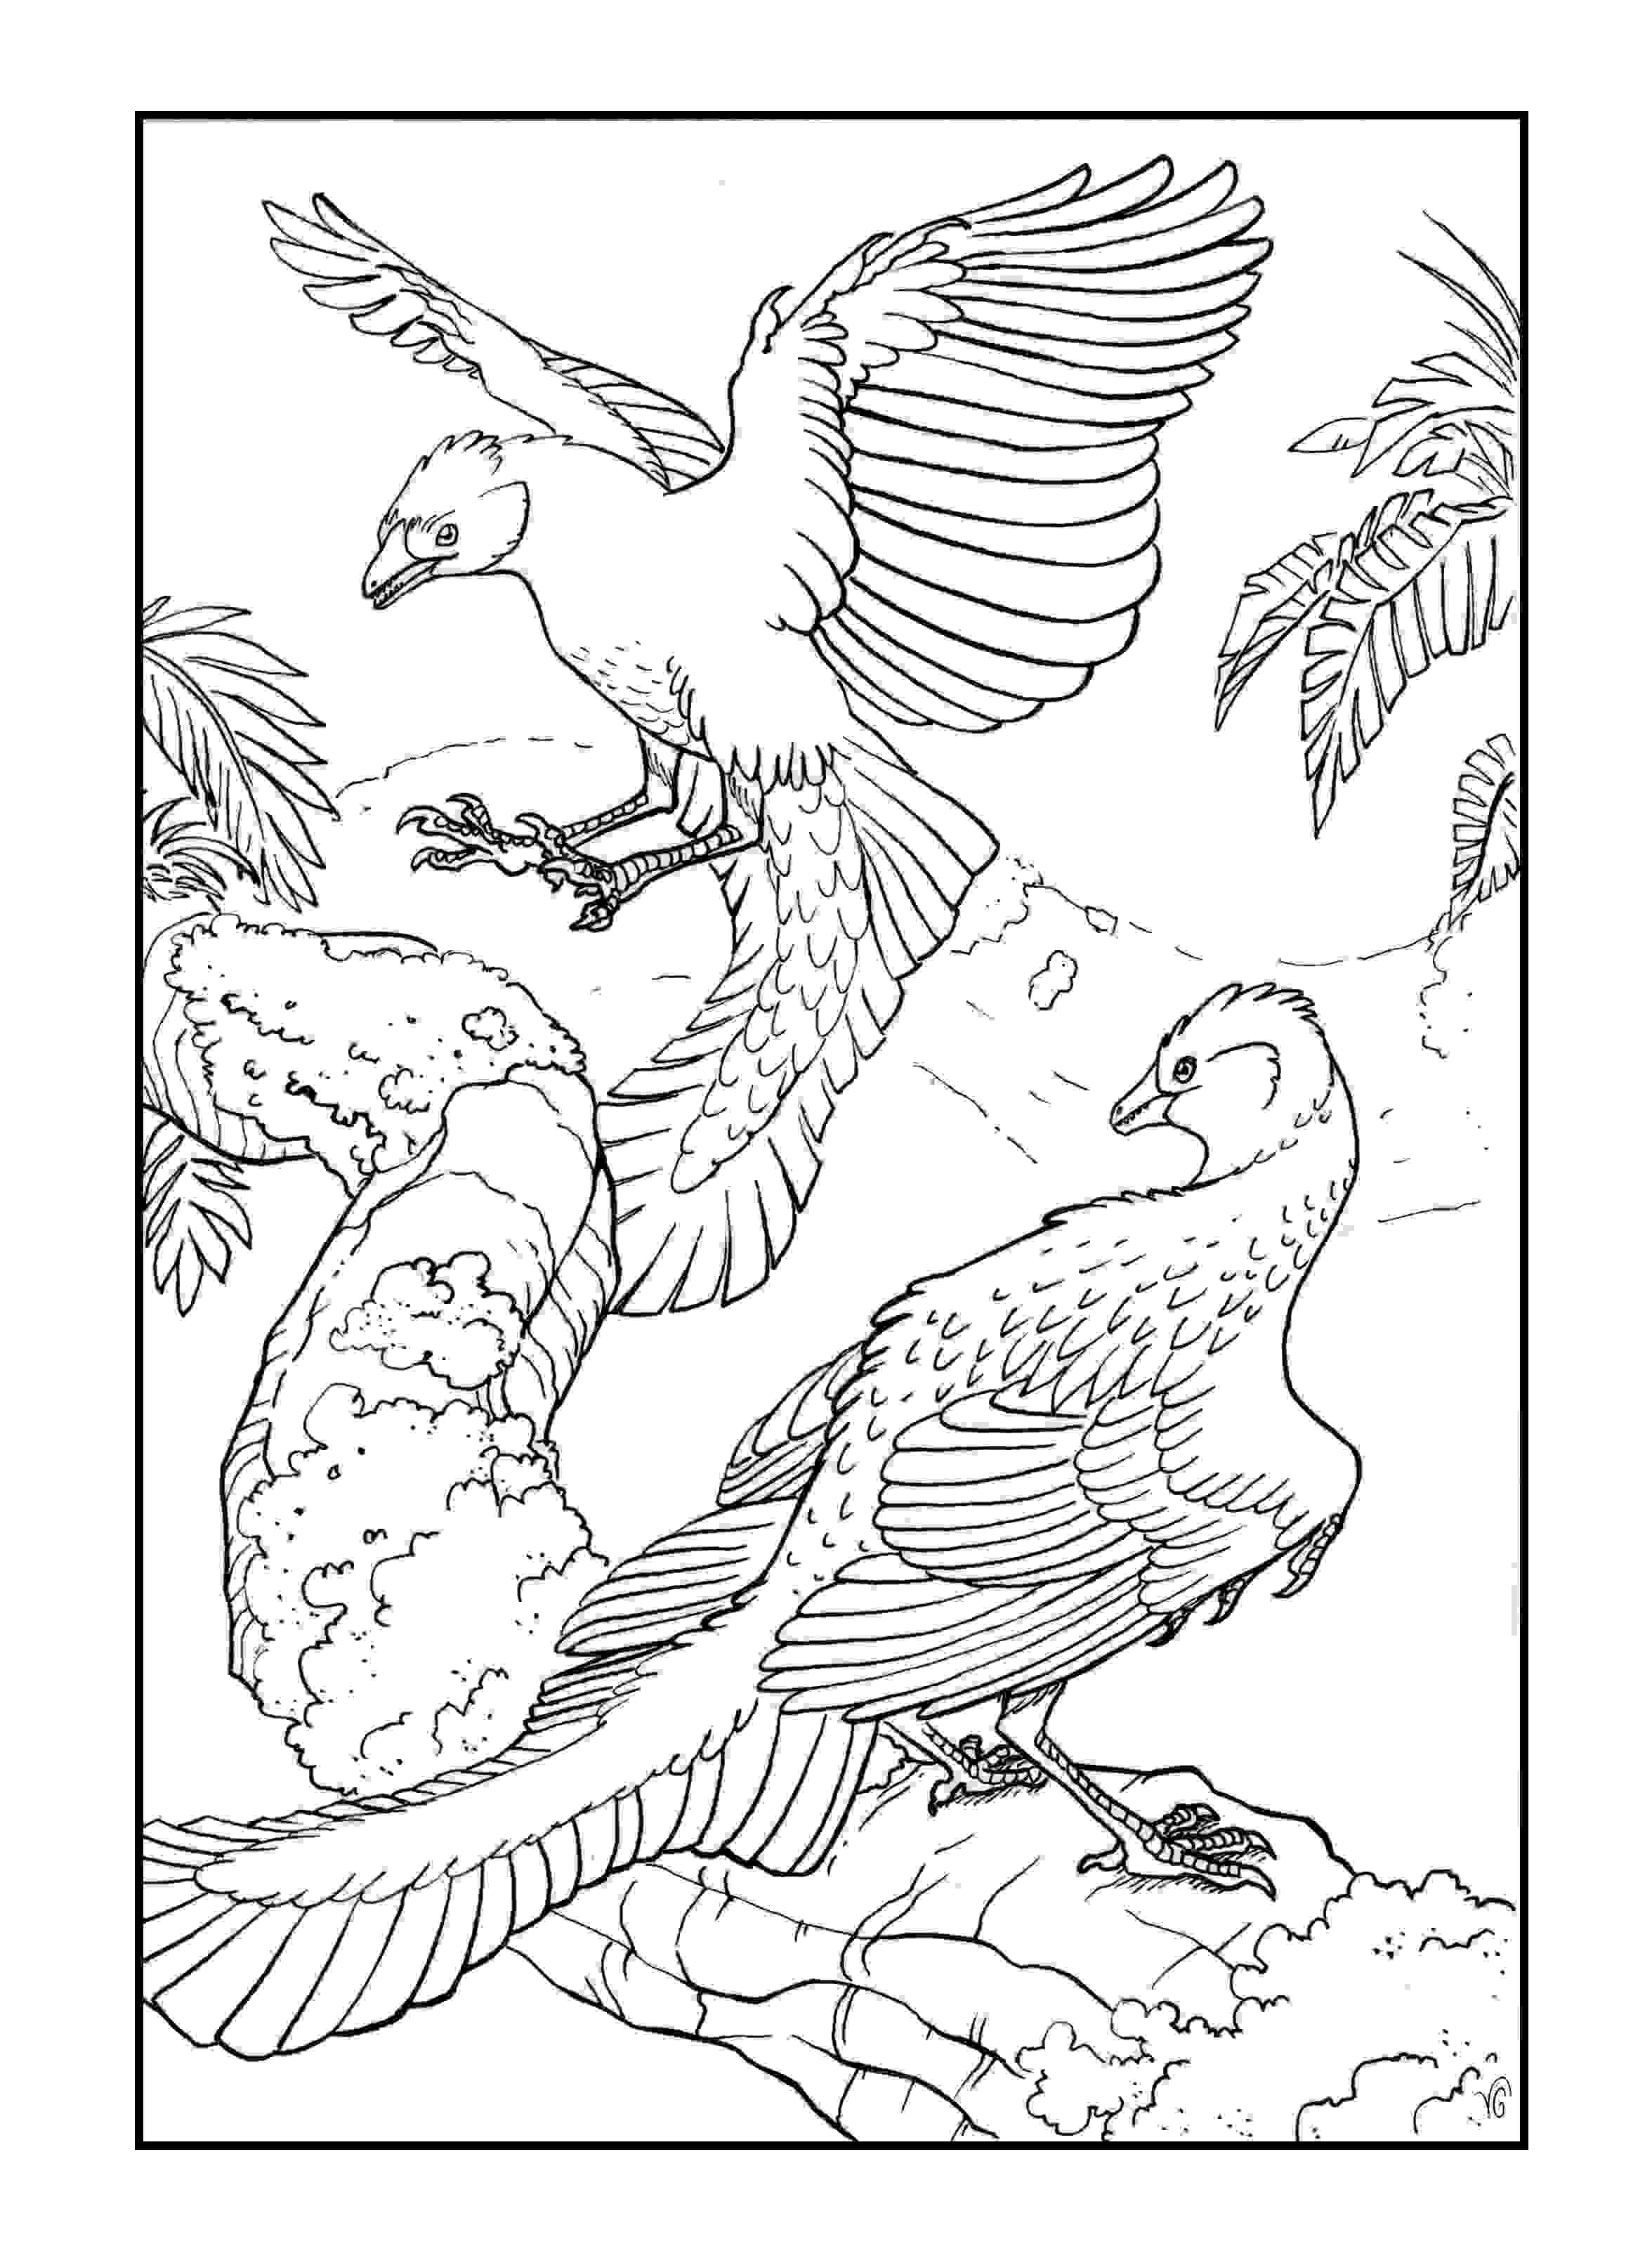 Archaeopteryx lithographica Coloring Page